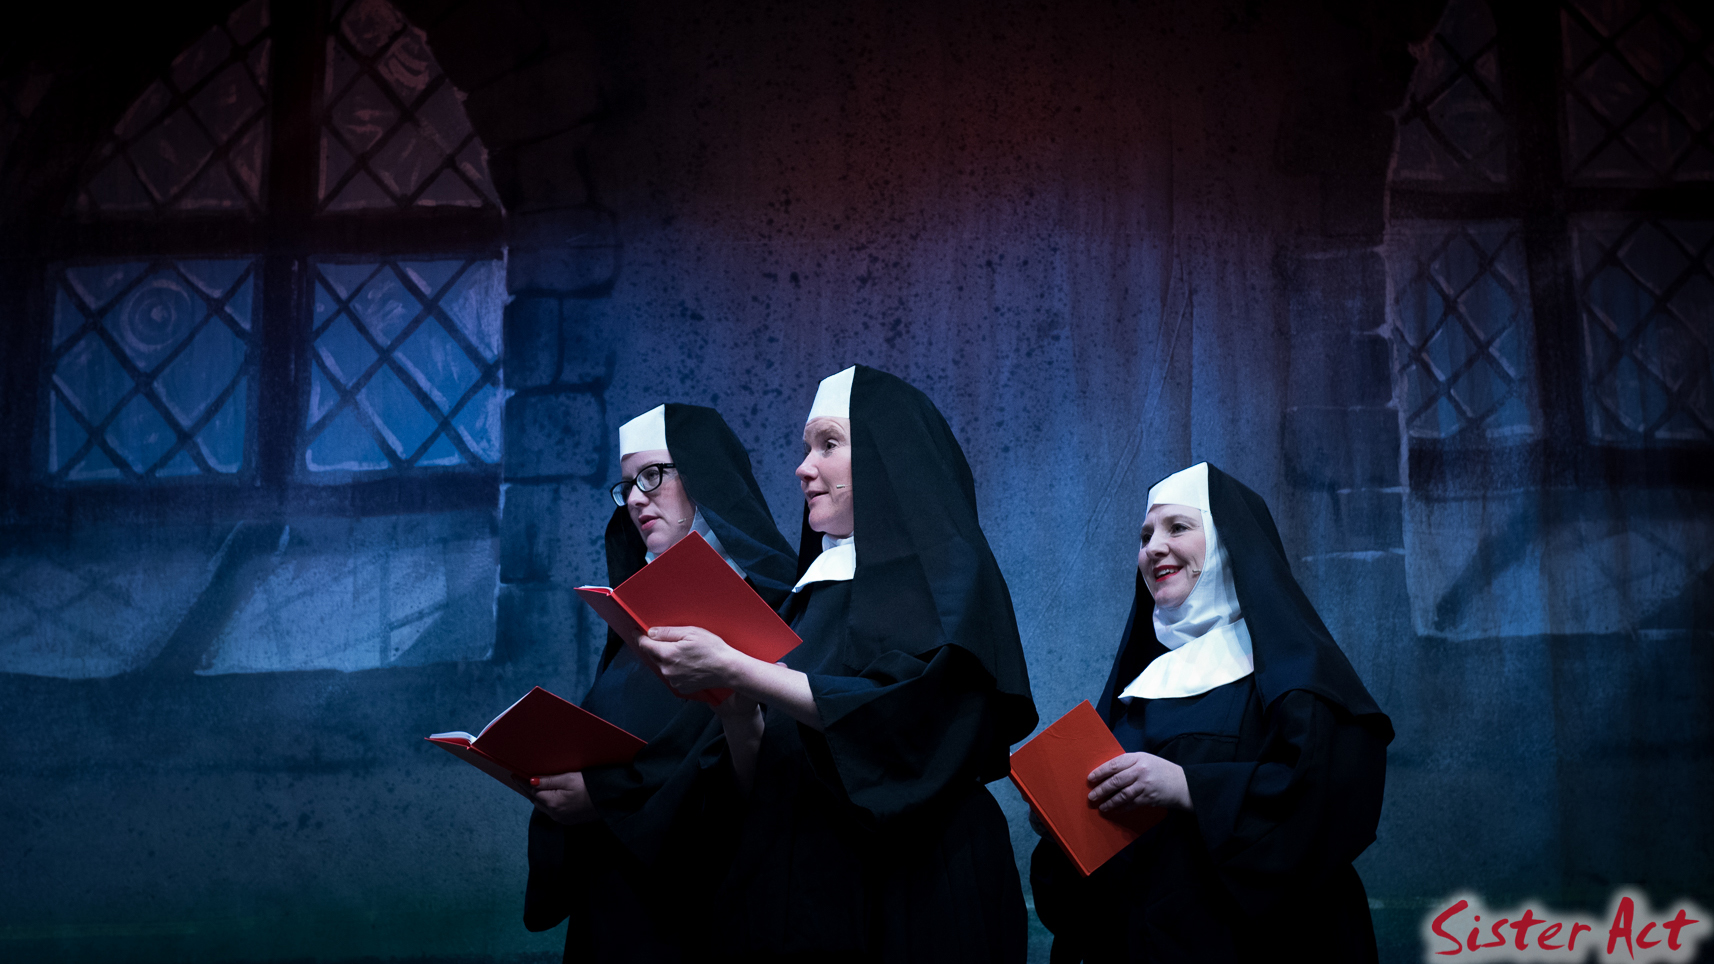 Sister Act Hastleons